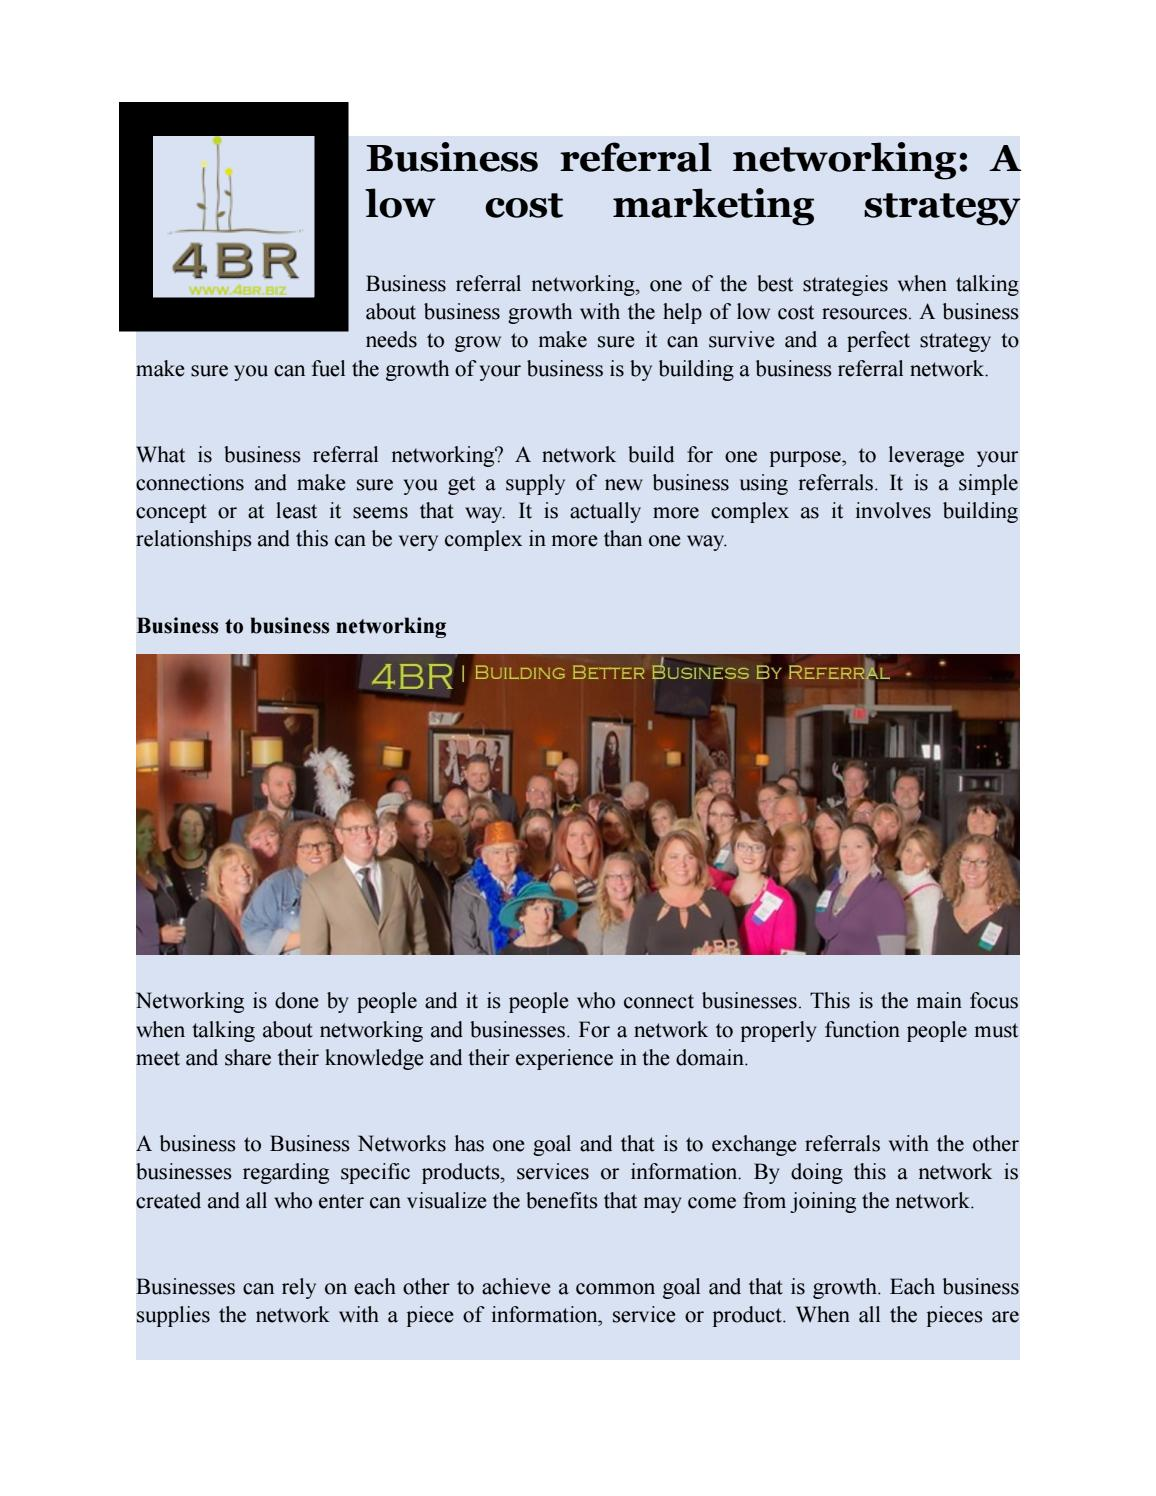 Business referral networking a low cost marketing strategy by 4BR